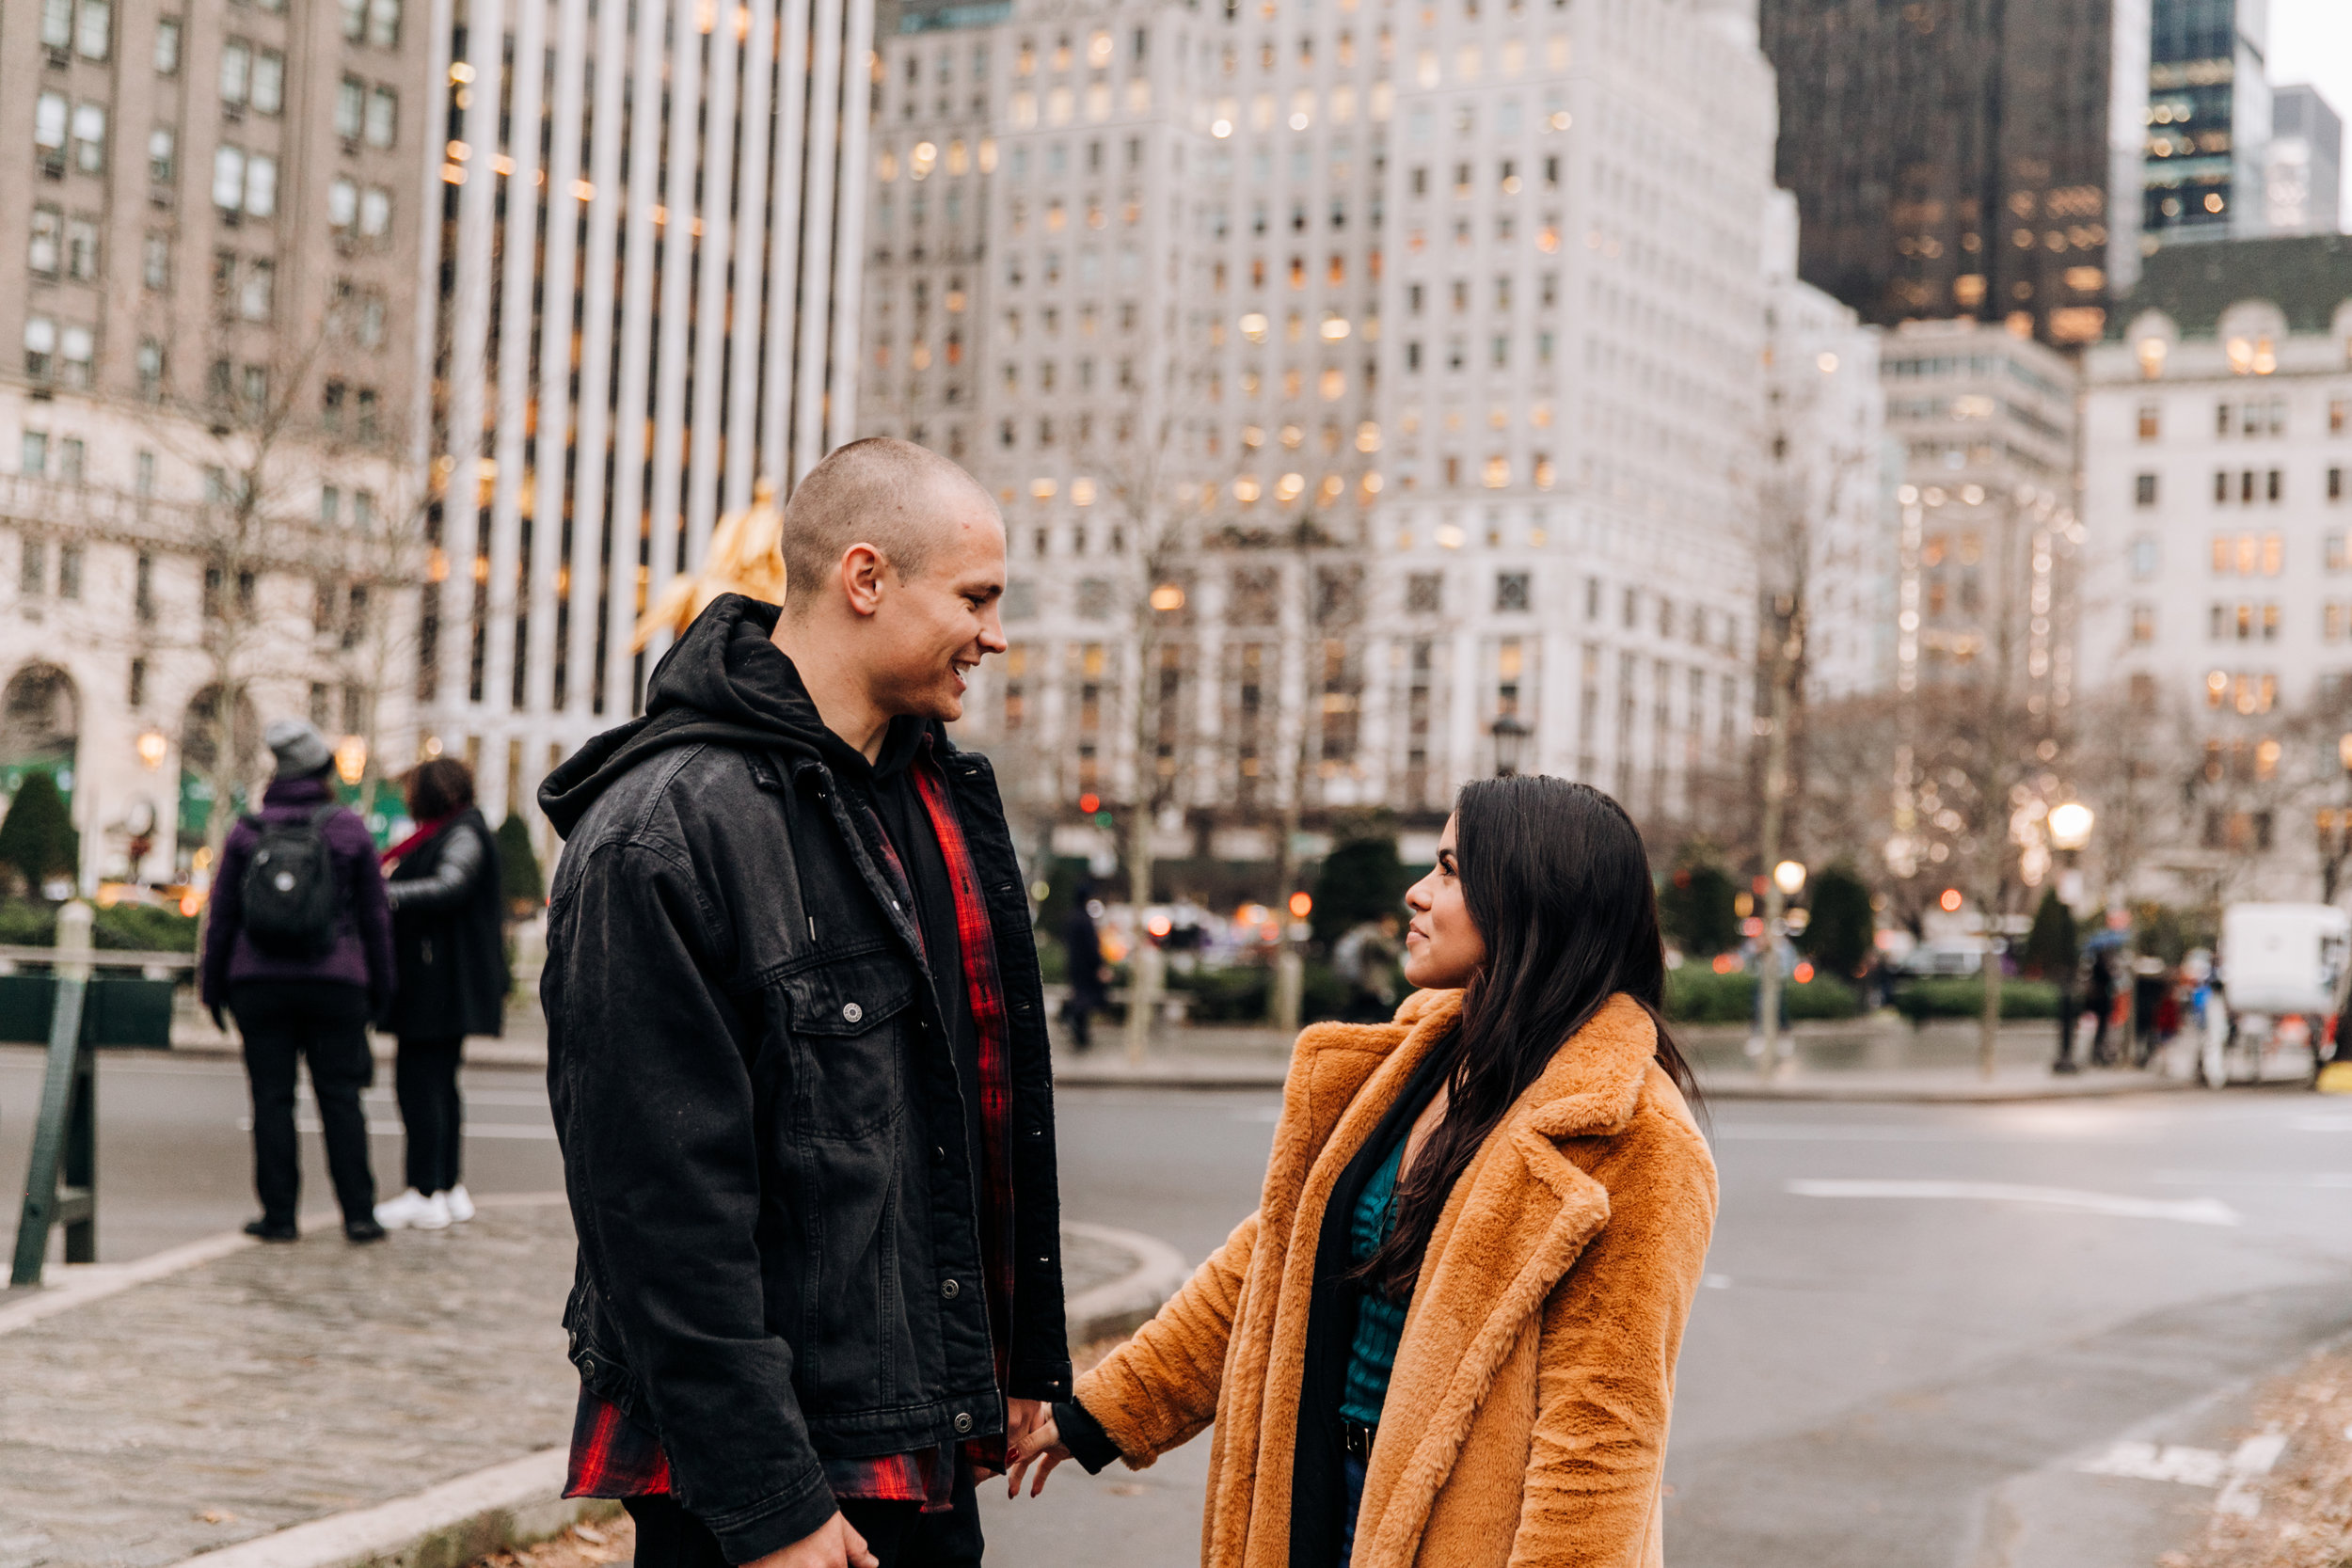 New York City Proposal, Central Park Proposal, NY Proposal Photographer, New York Proposal Photographer, NYC Engagement Photographer, New York Engagement Session, Central Park Proposal Photographer